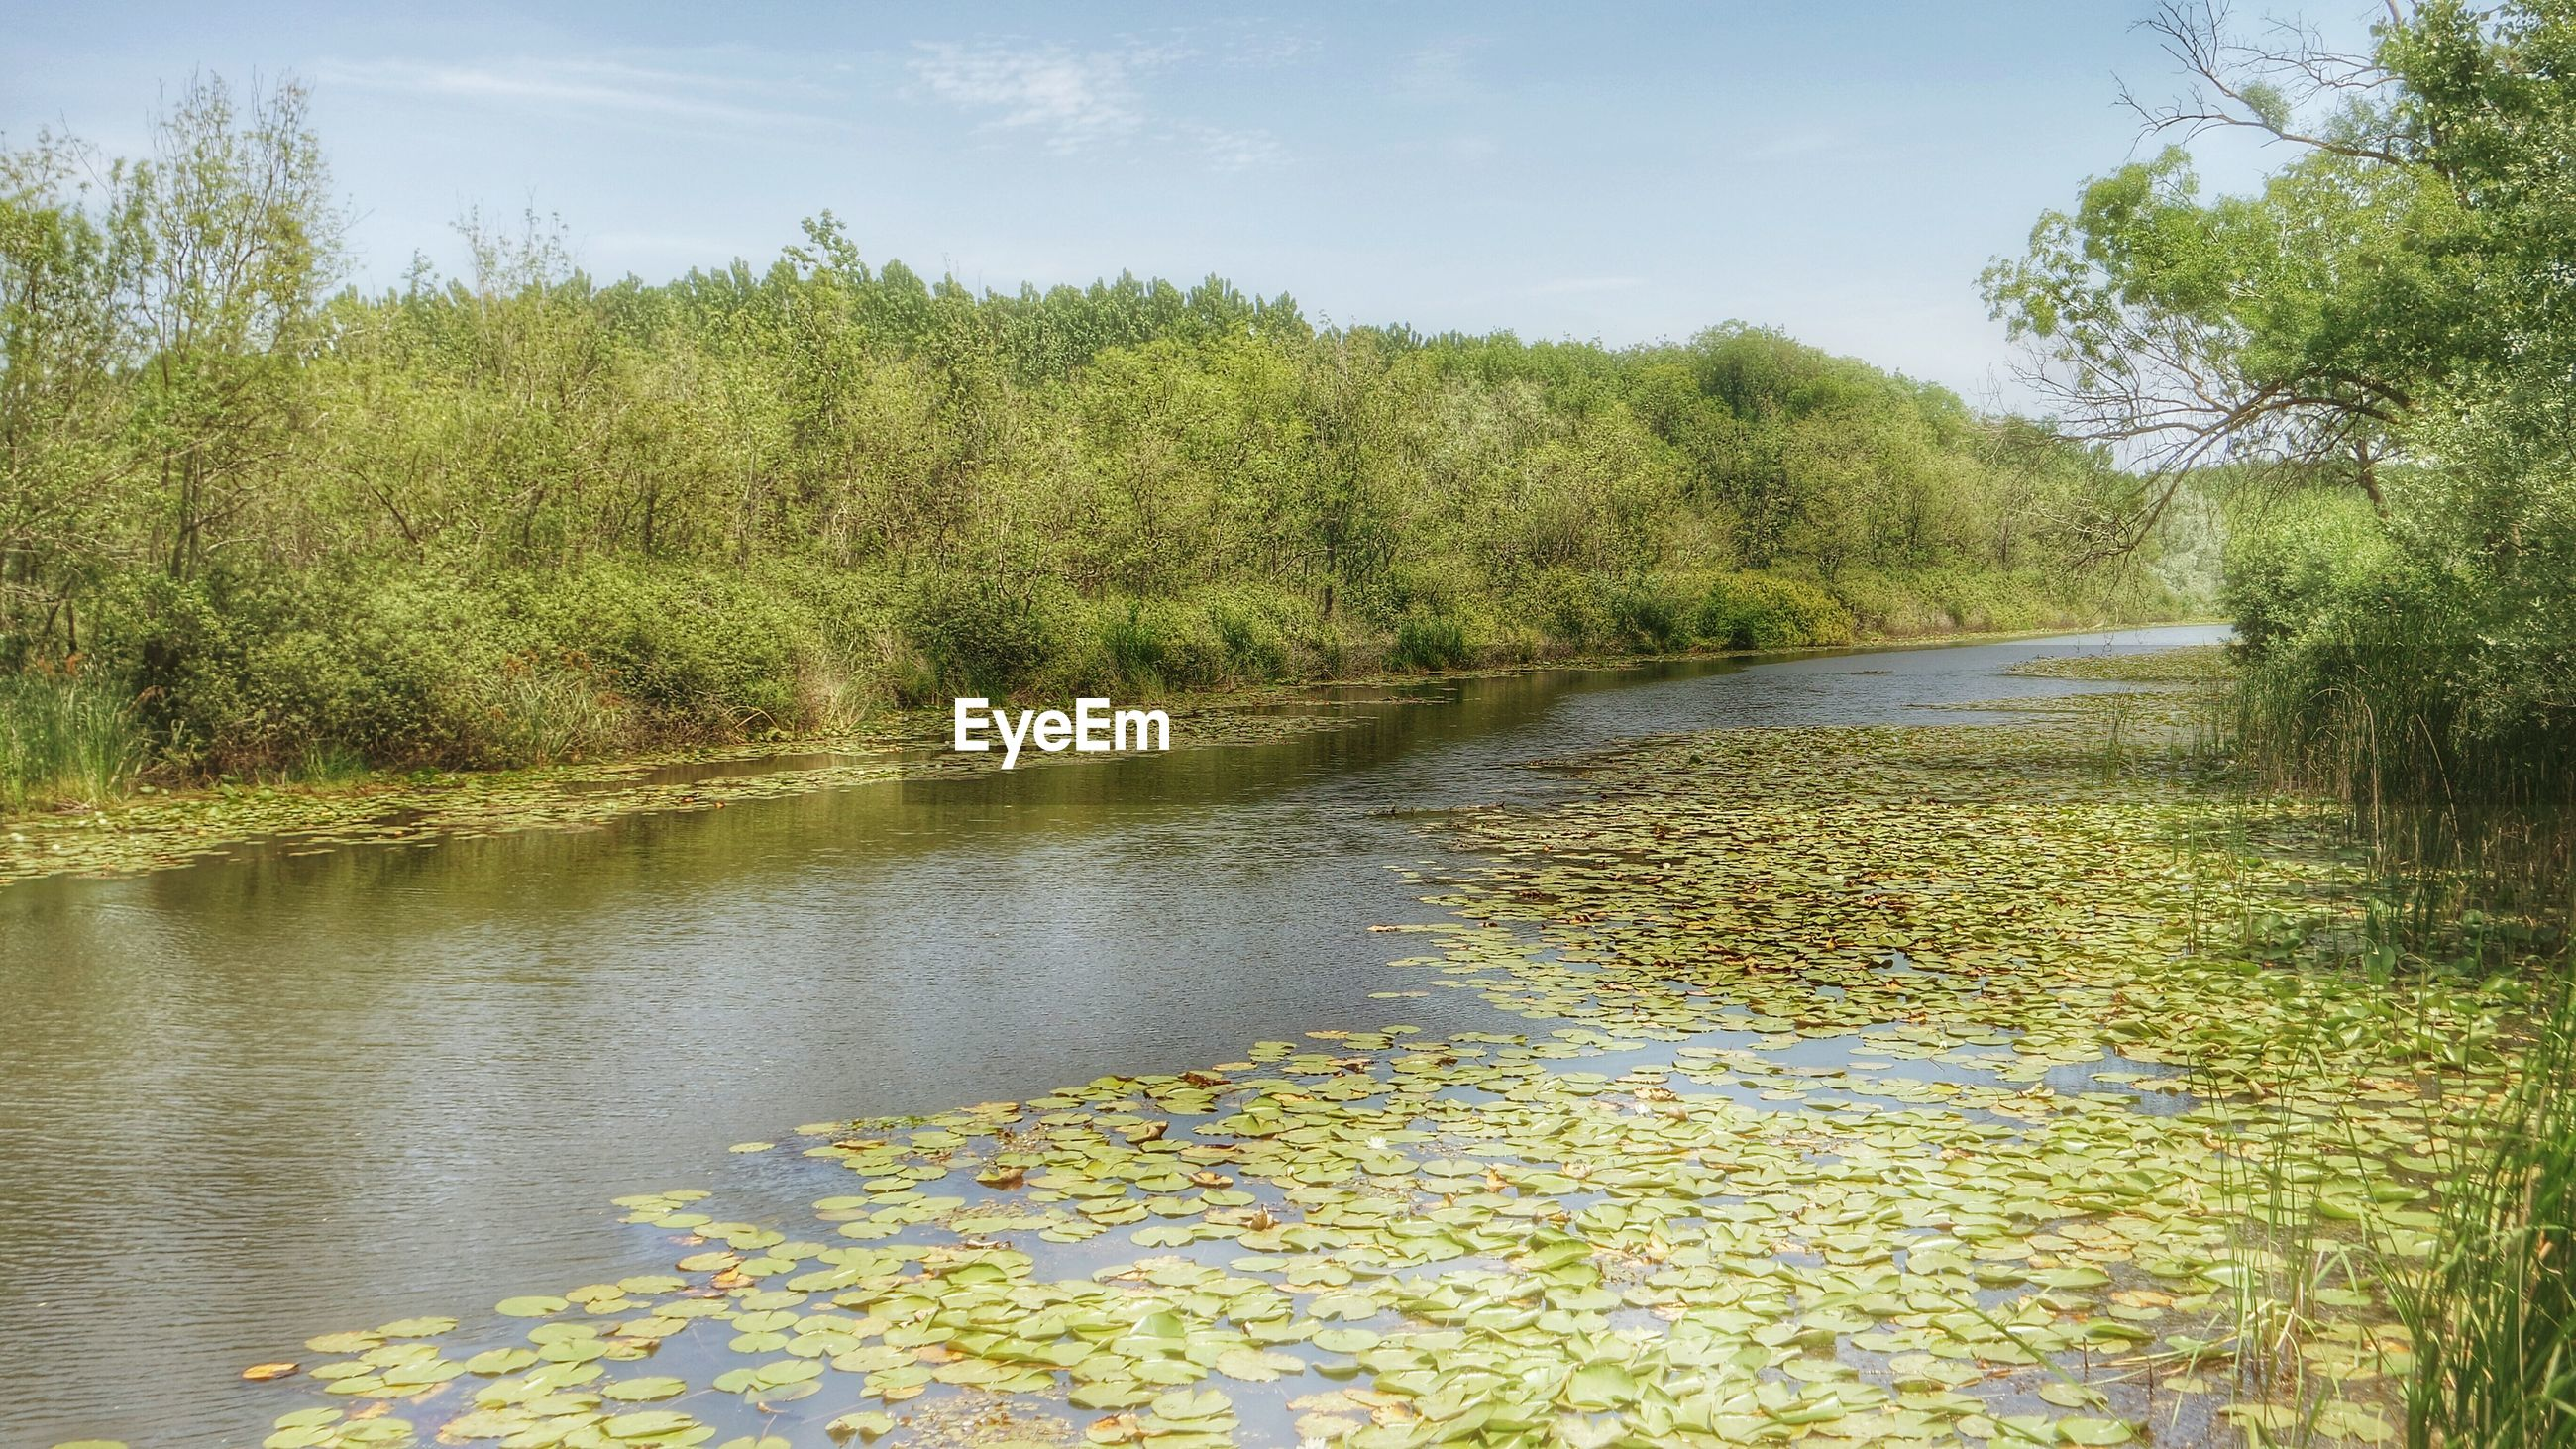 VIEW OF TREES IN POND